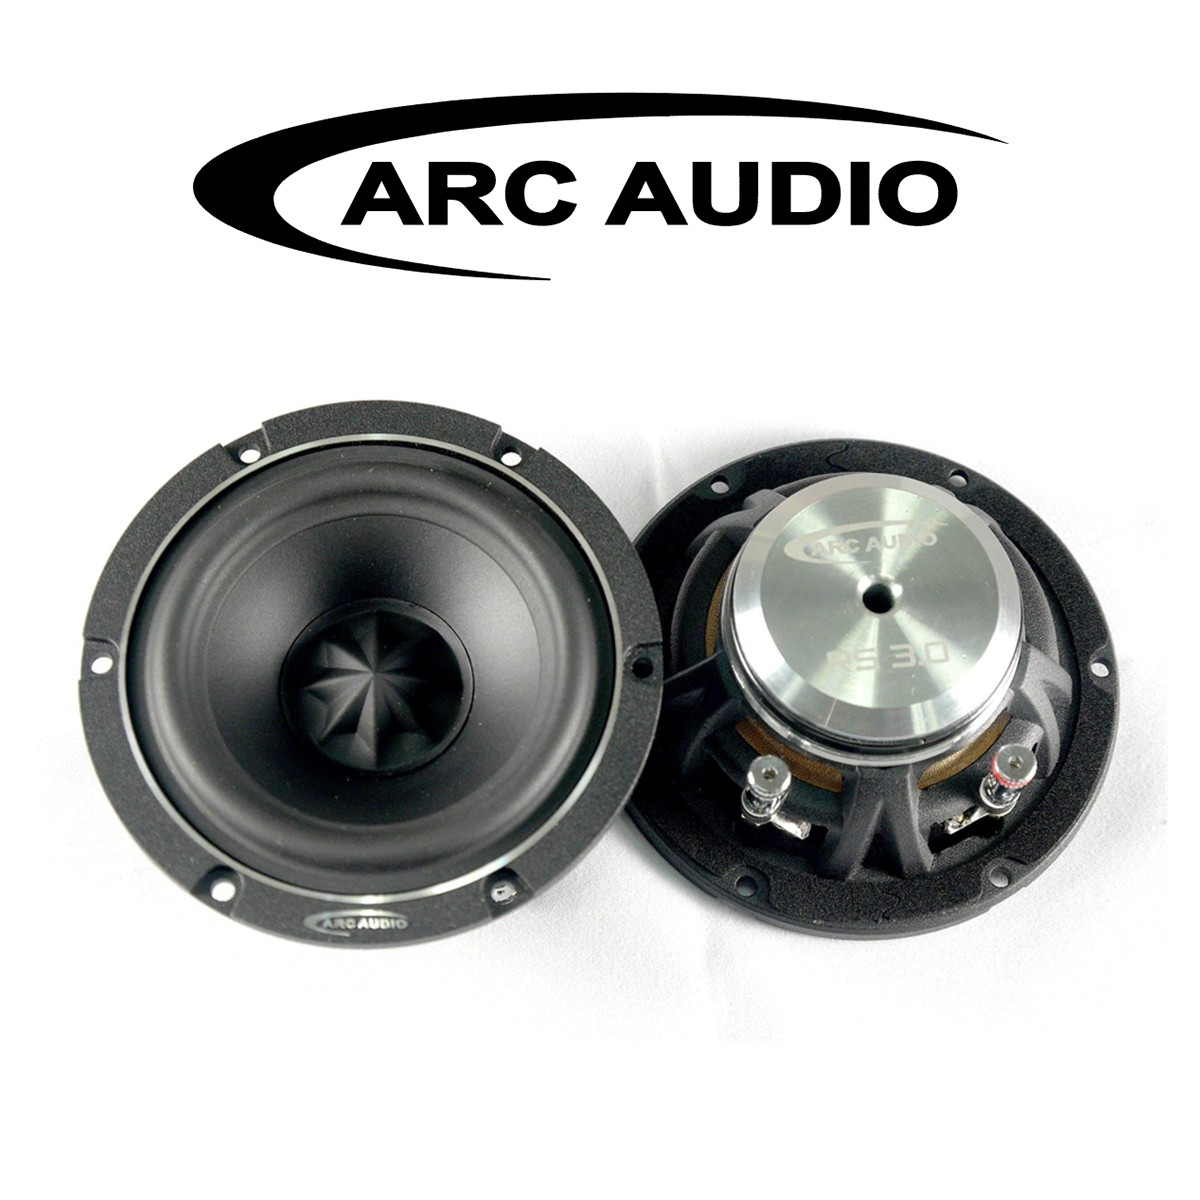 ARC AUDIO RS 3.0 - MIDRANGE 3 INCHI